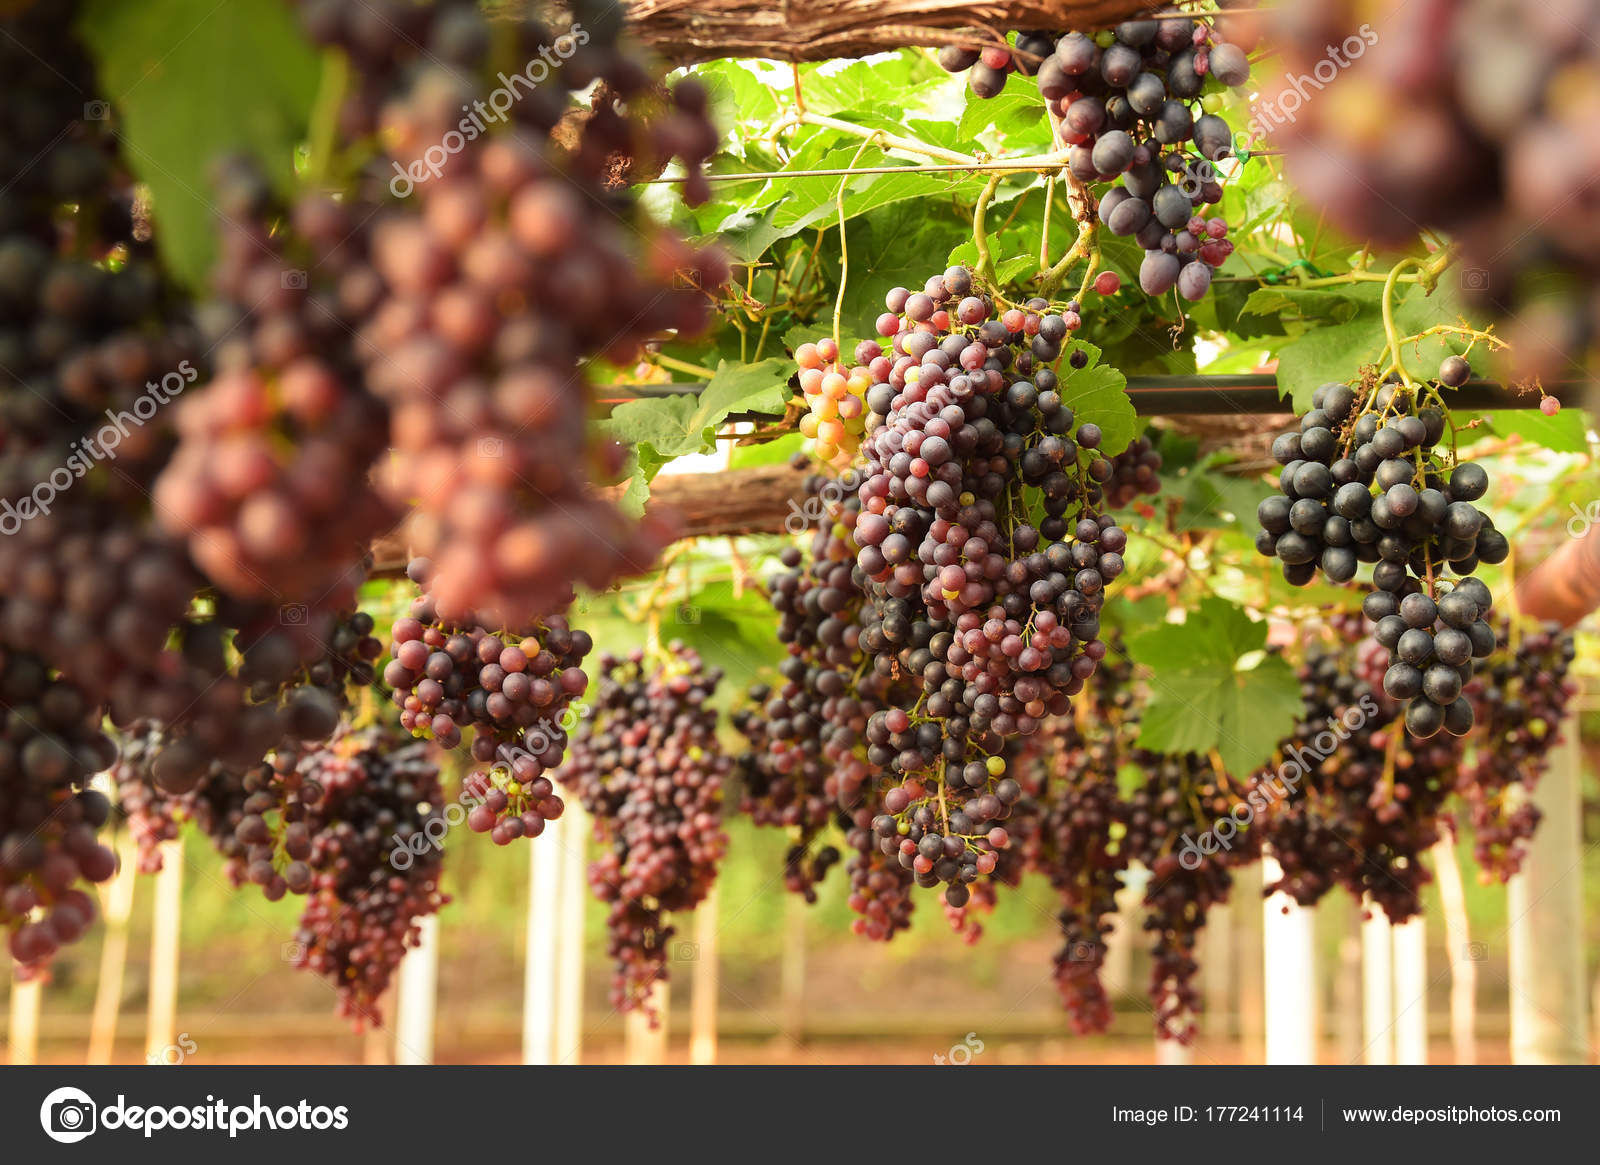 Red Ripe Grapes Garden — Stock Photo © aei_cei@hotmail.com #177241114